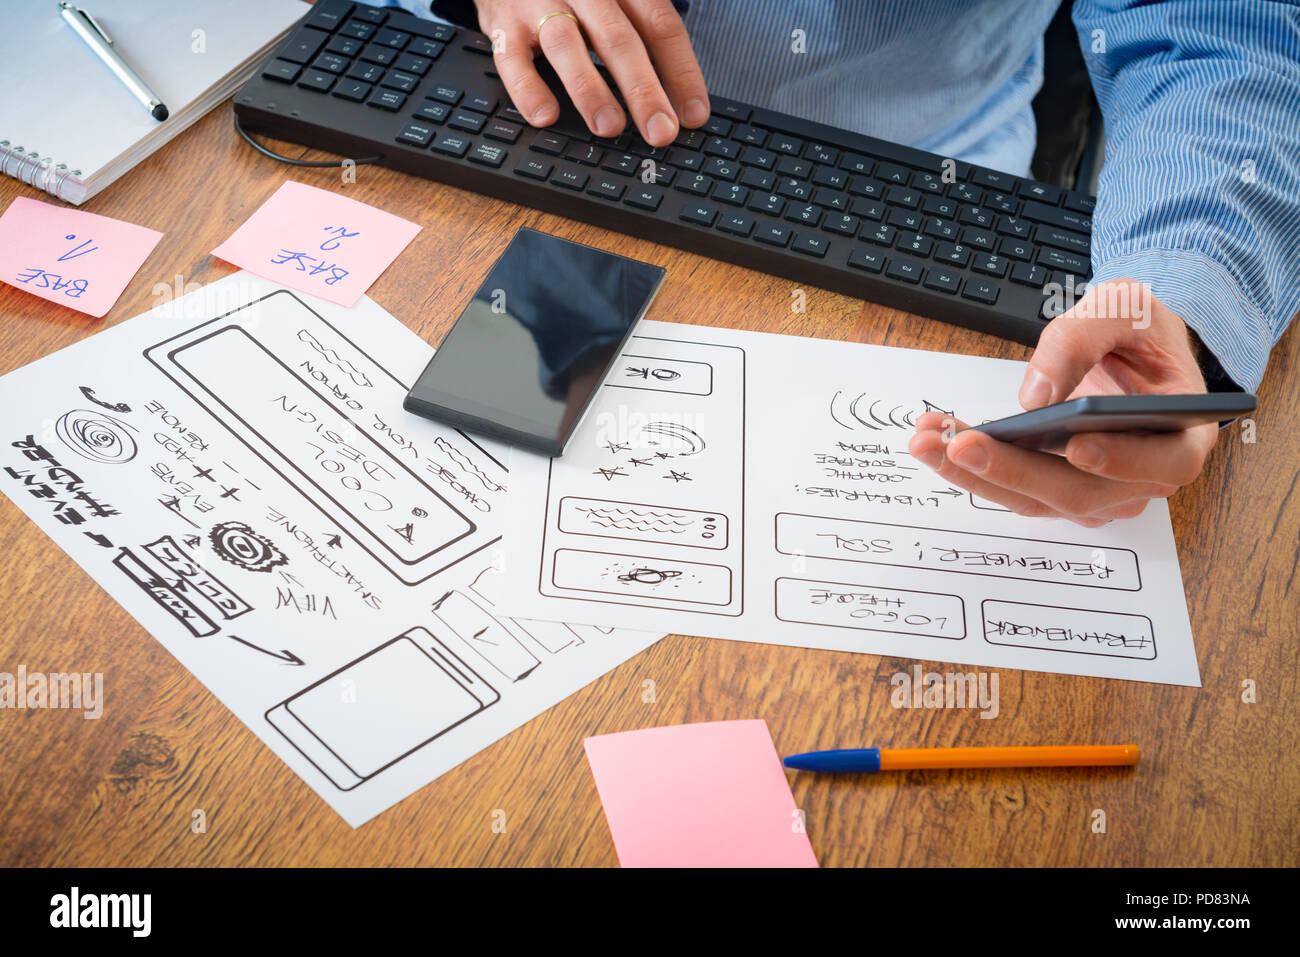 Designer working at new mobile applications - Stock Image